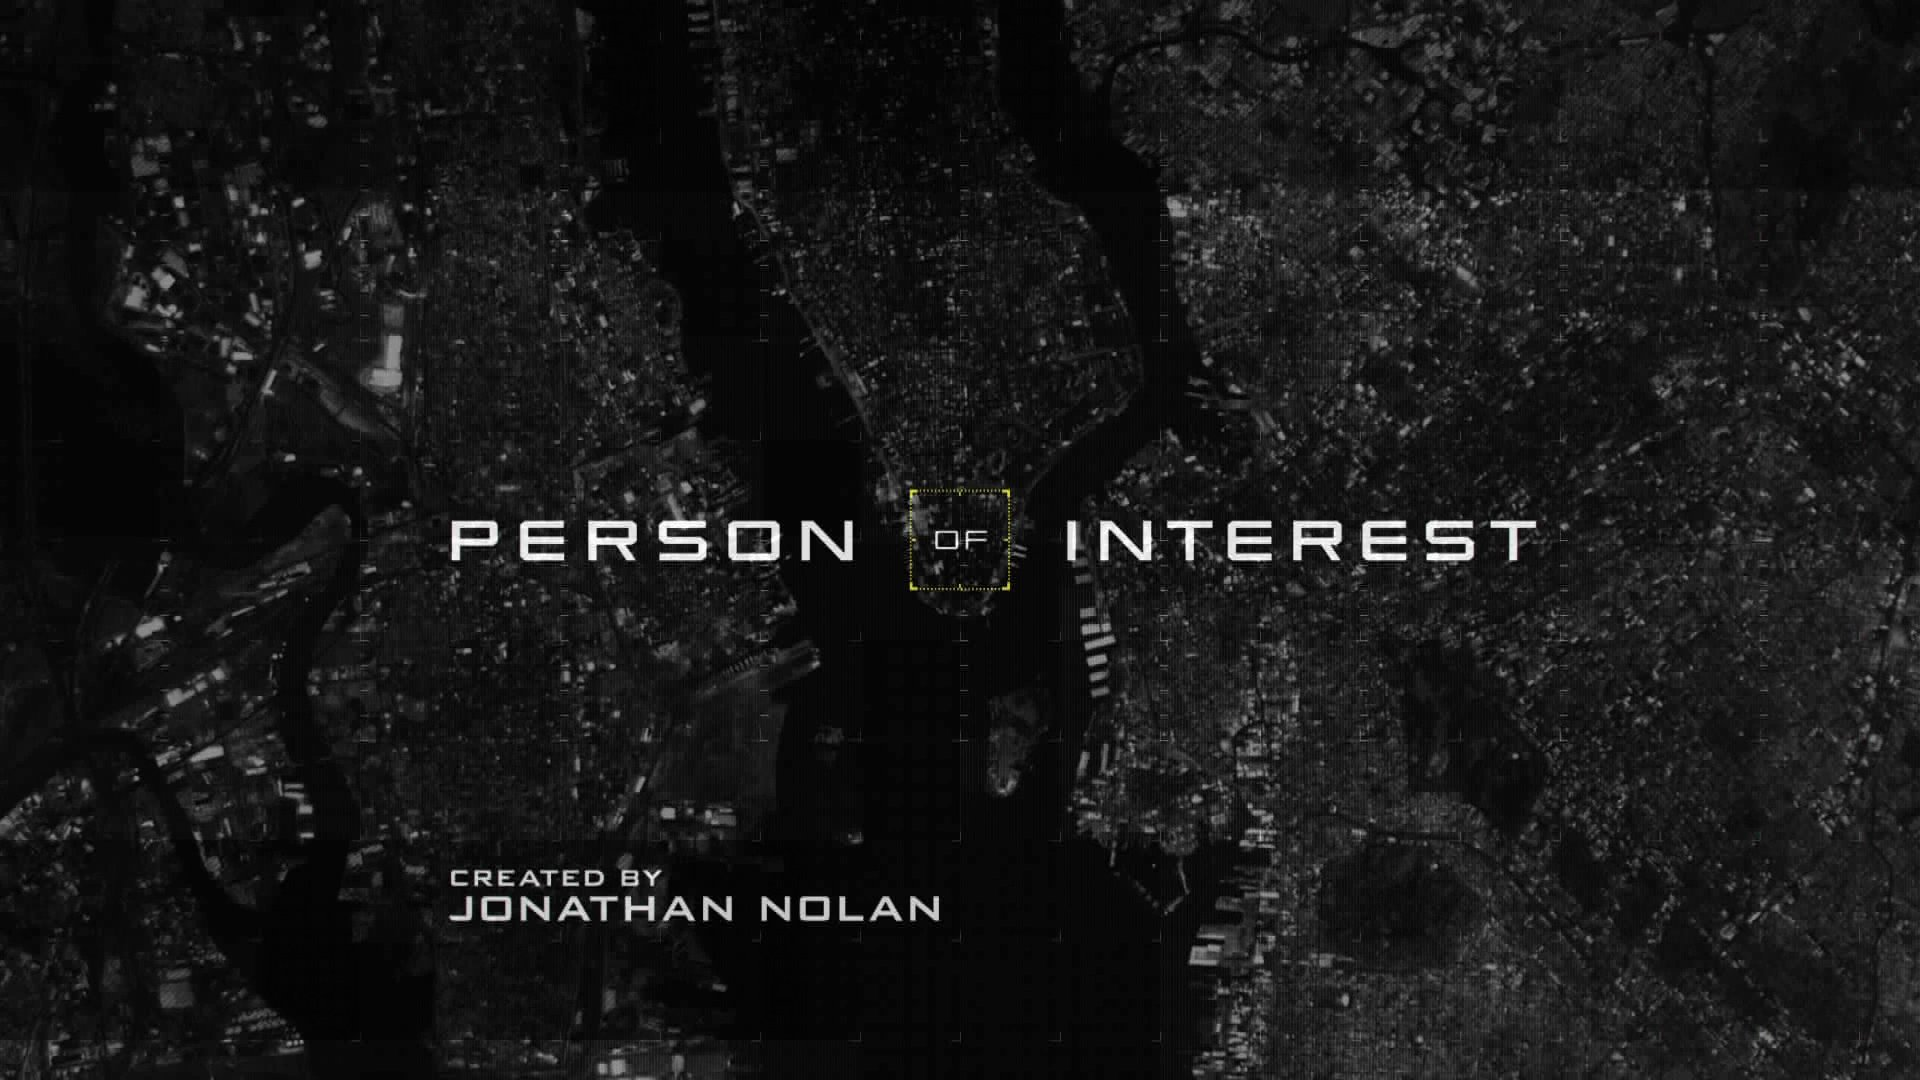 person of interest wallpapers 1920x1080 - photo #1